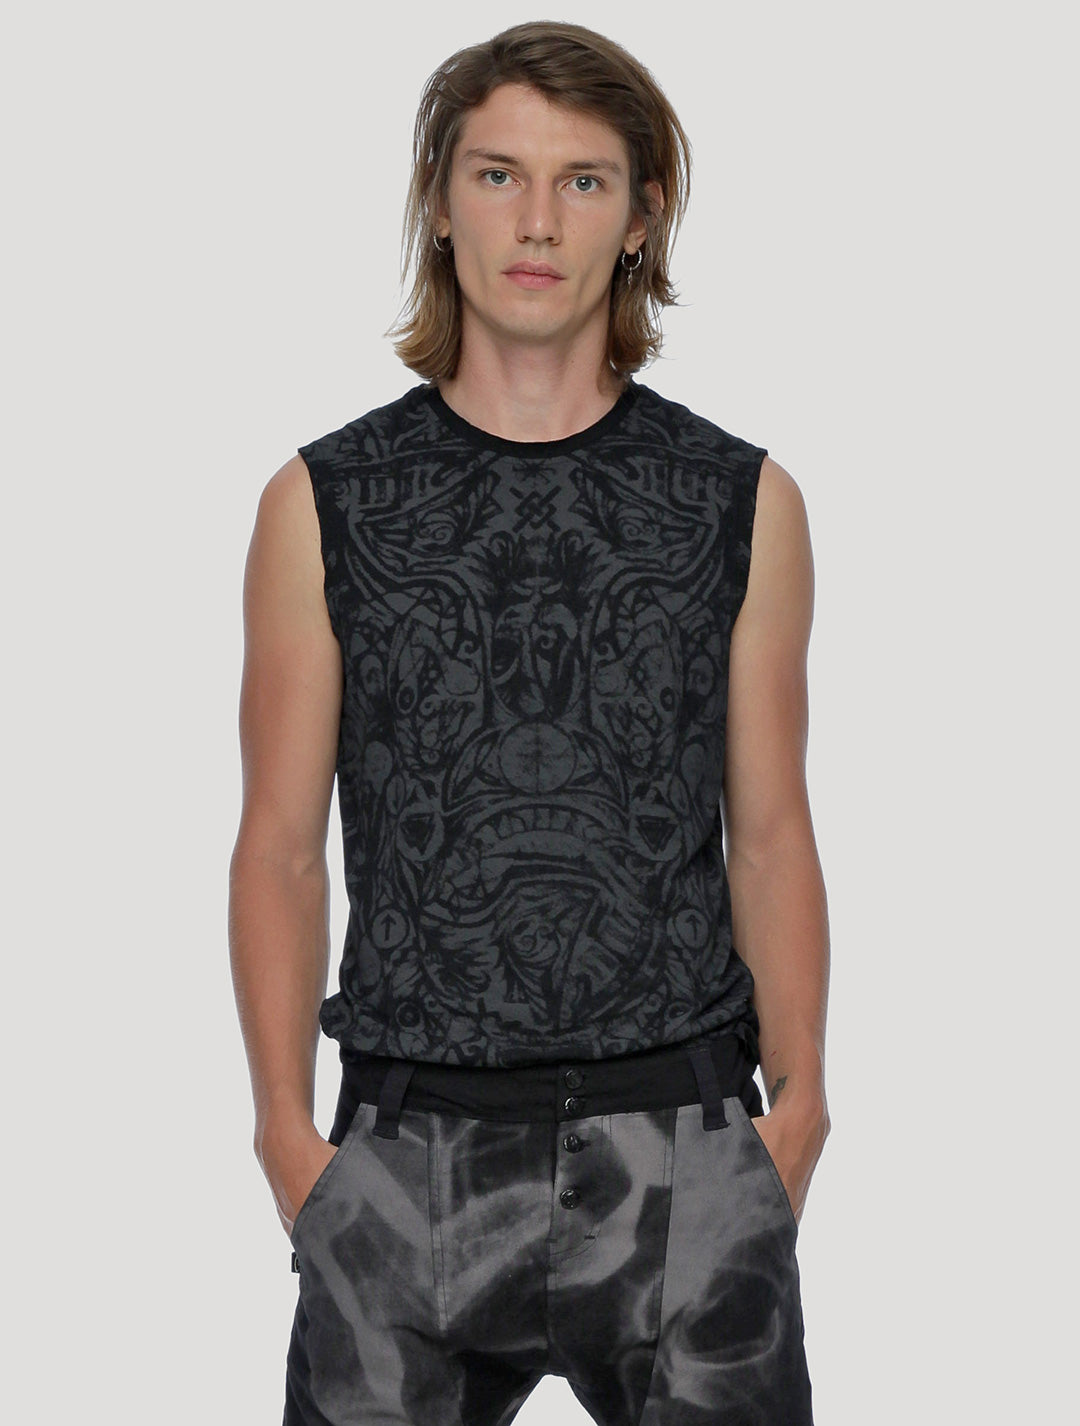 Warrior Sleeveless Tee